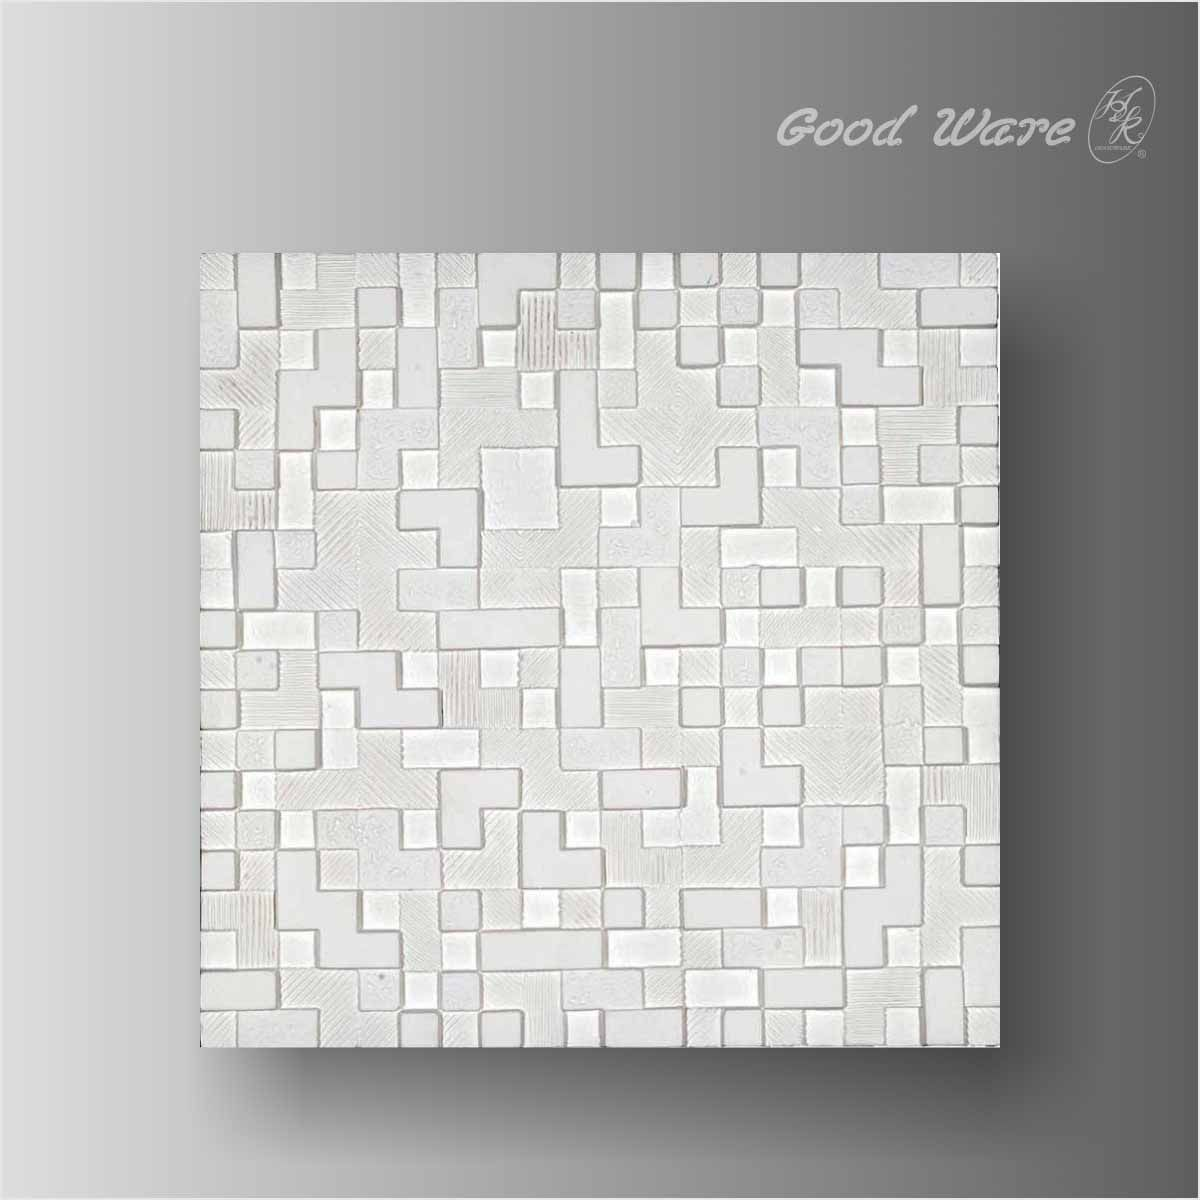 Polyurethane Bathroom Wall Coverings For Decorative Panel By Goodware Décor